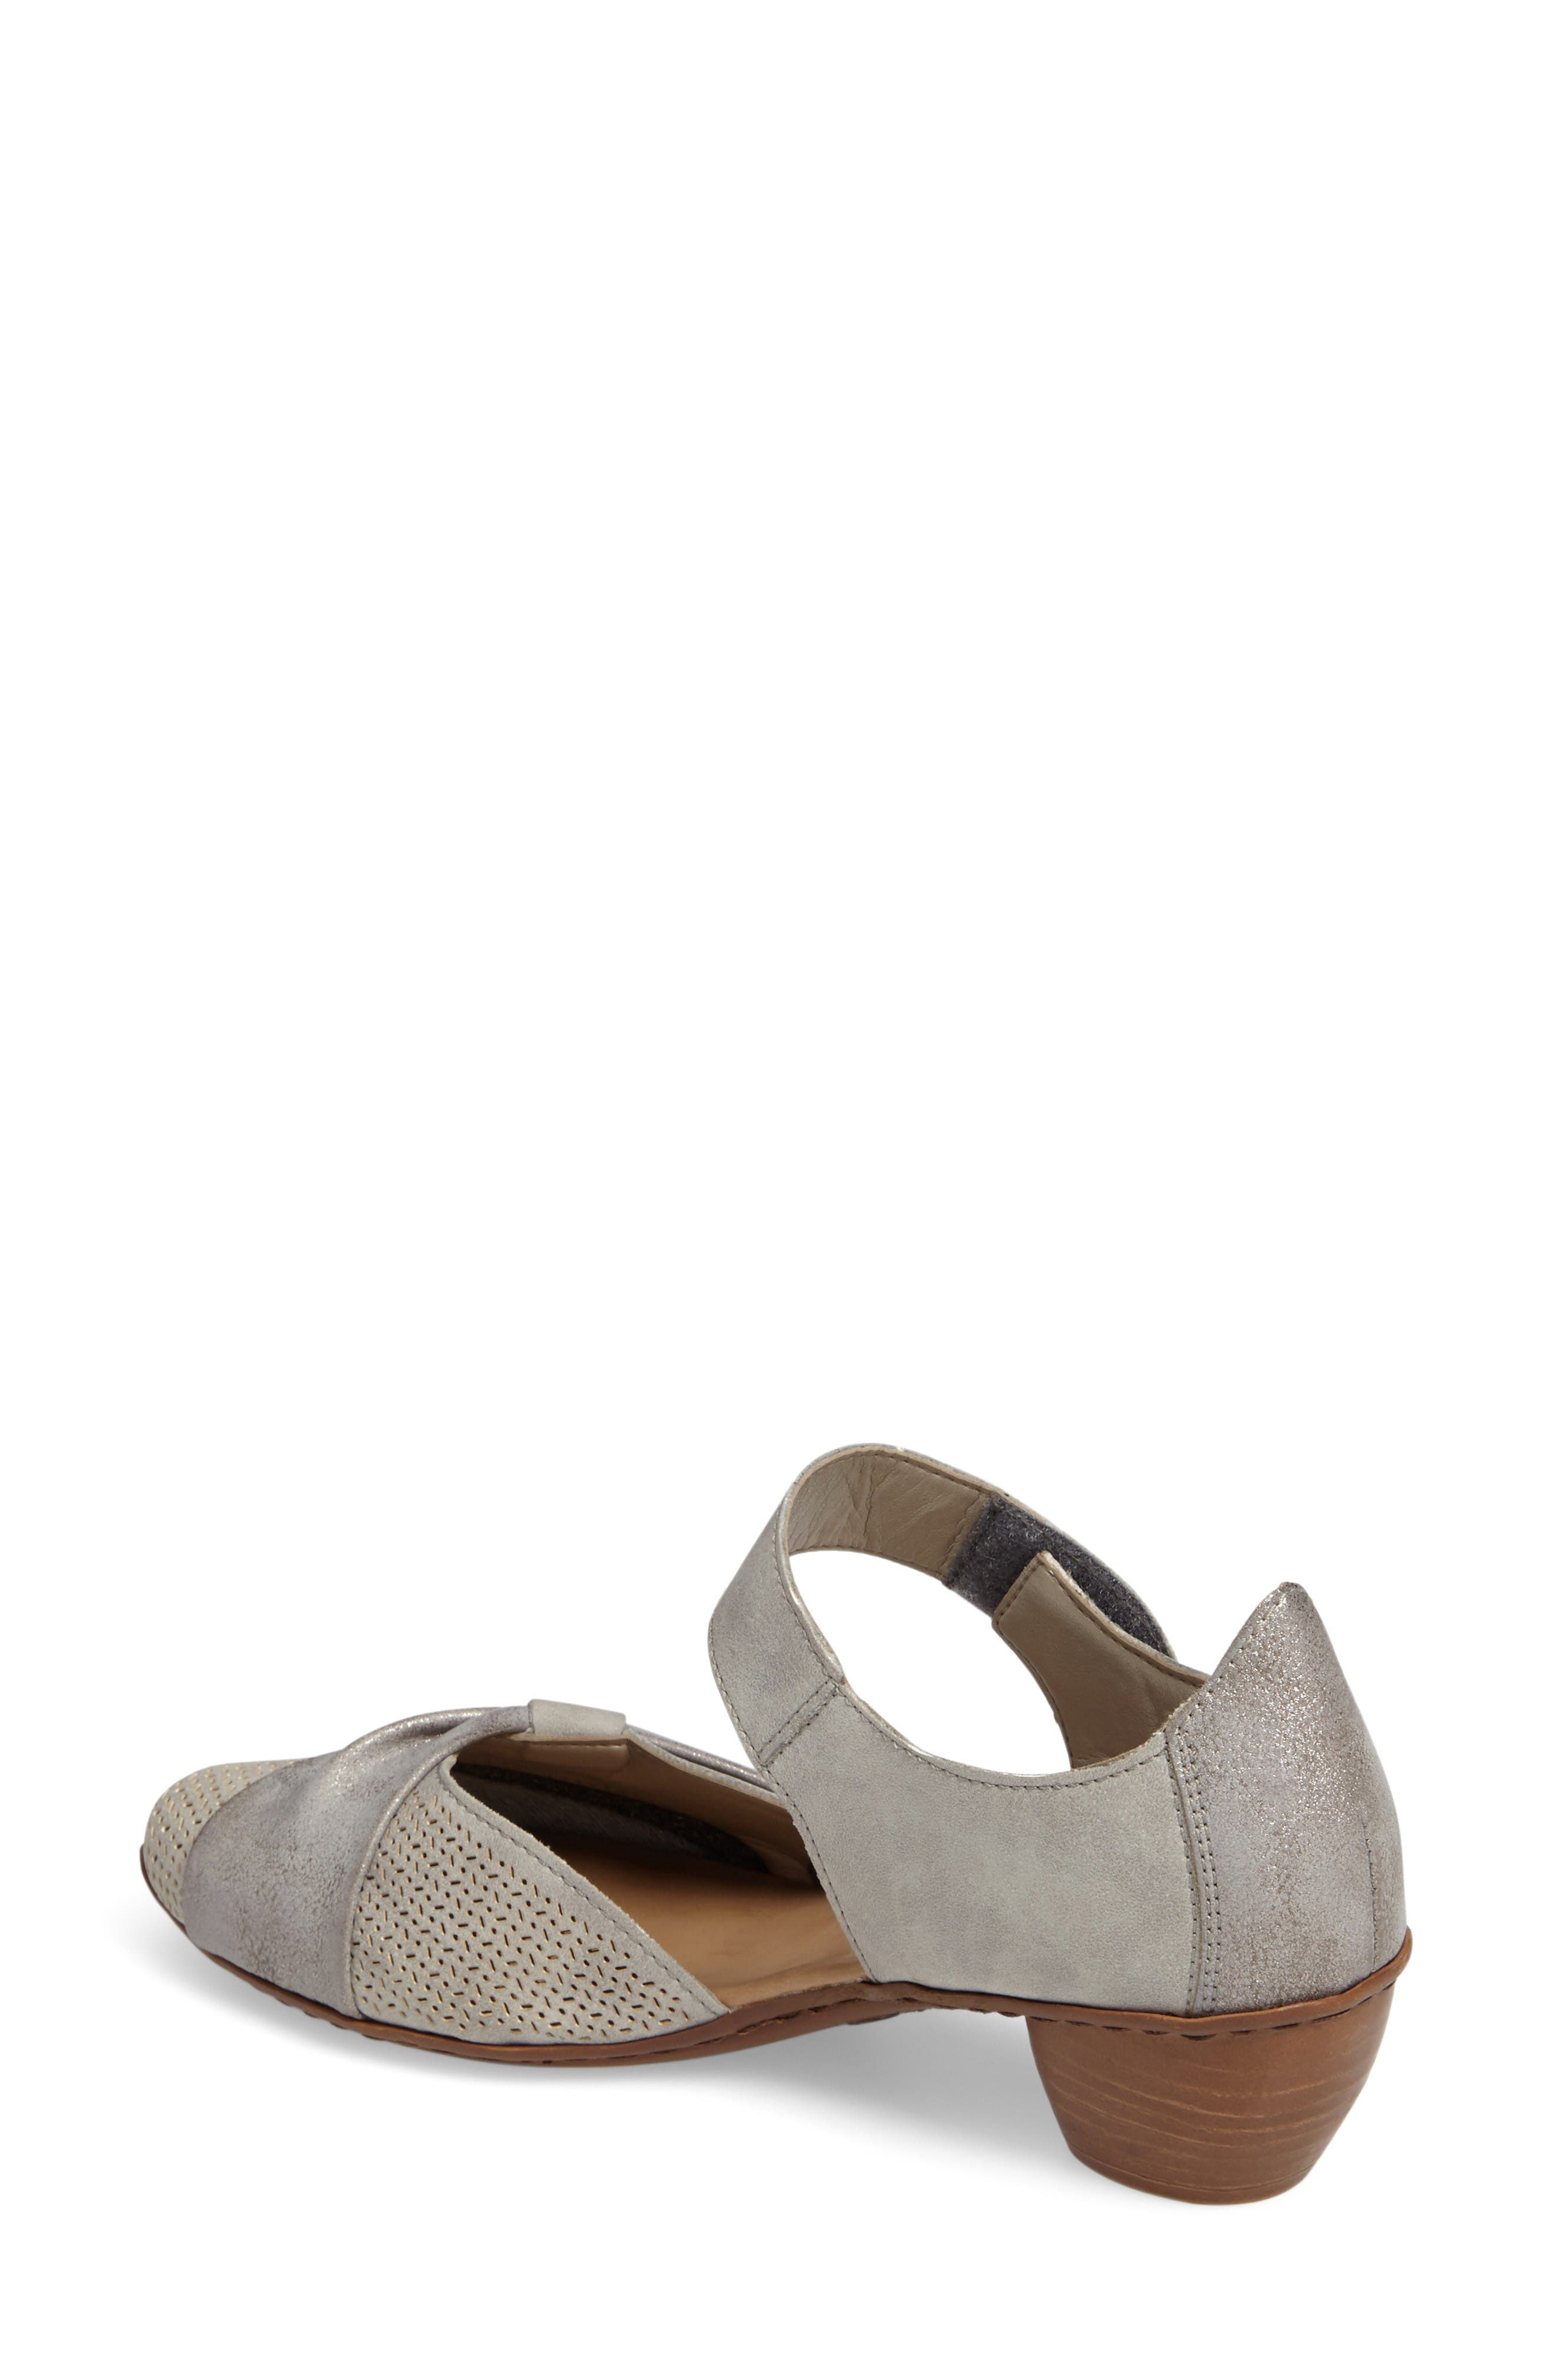 Mirjam 21 Two-Piece Pump,                             Alternate thumbnail 2, color,                             Grey Fabric